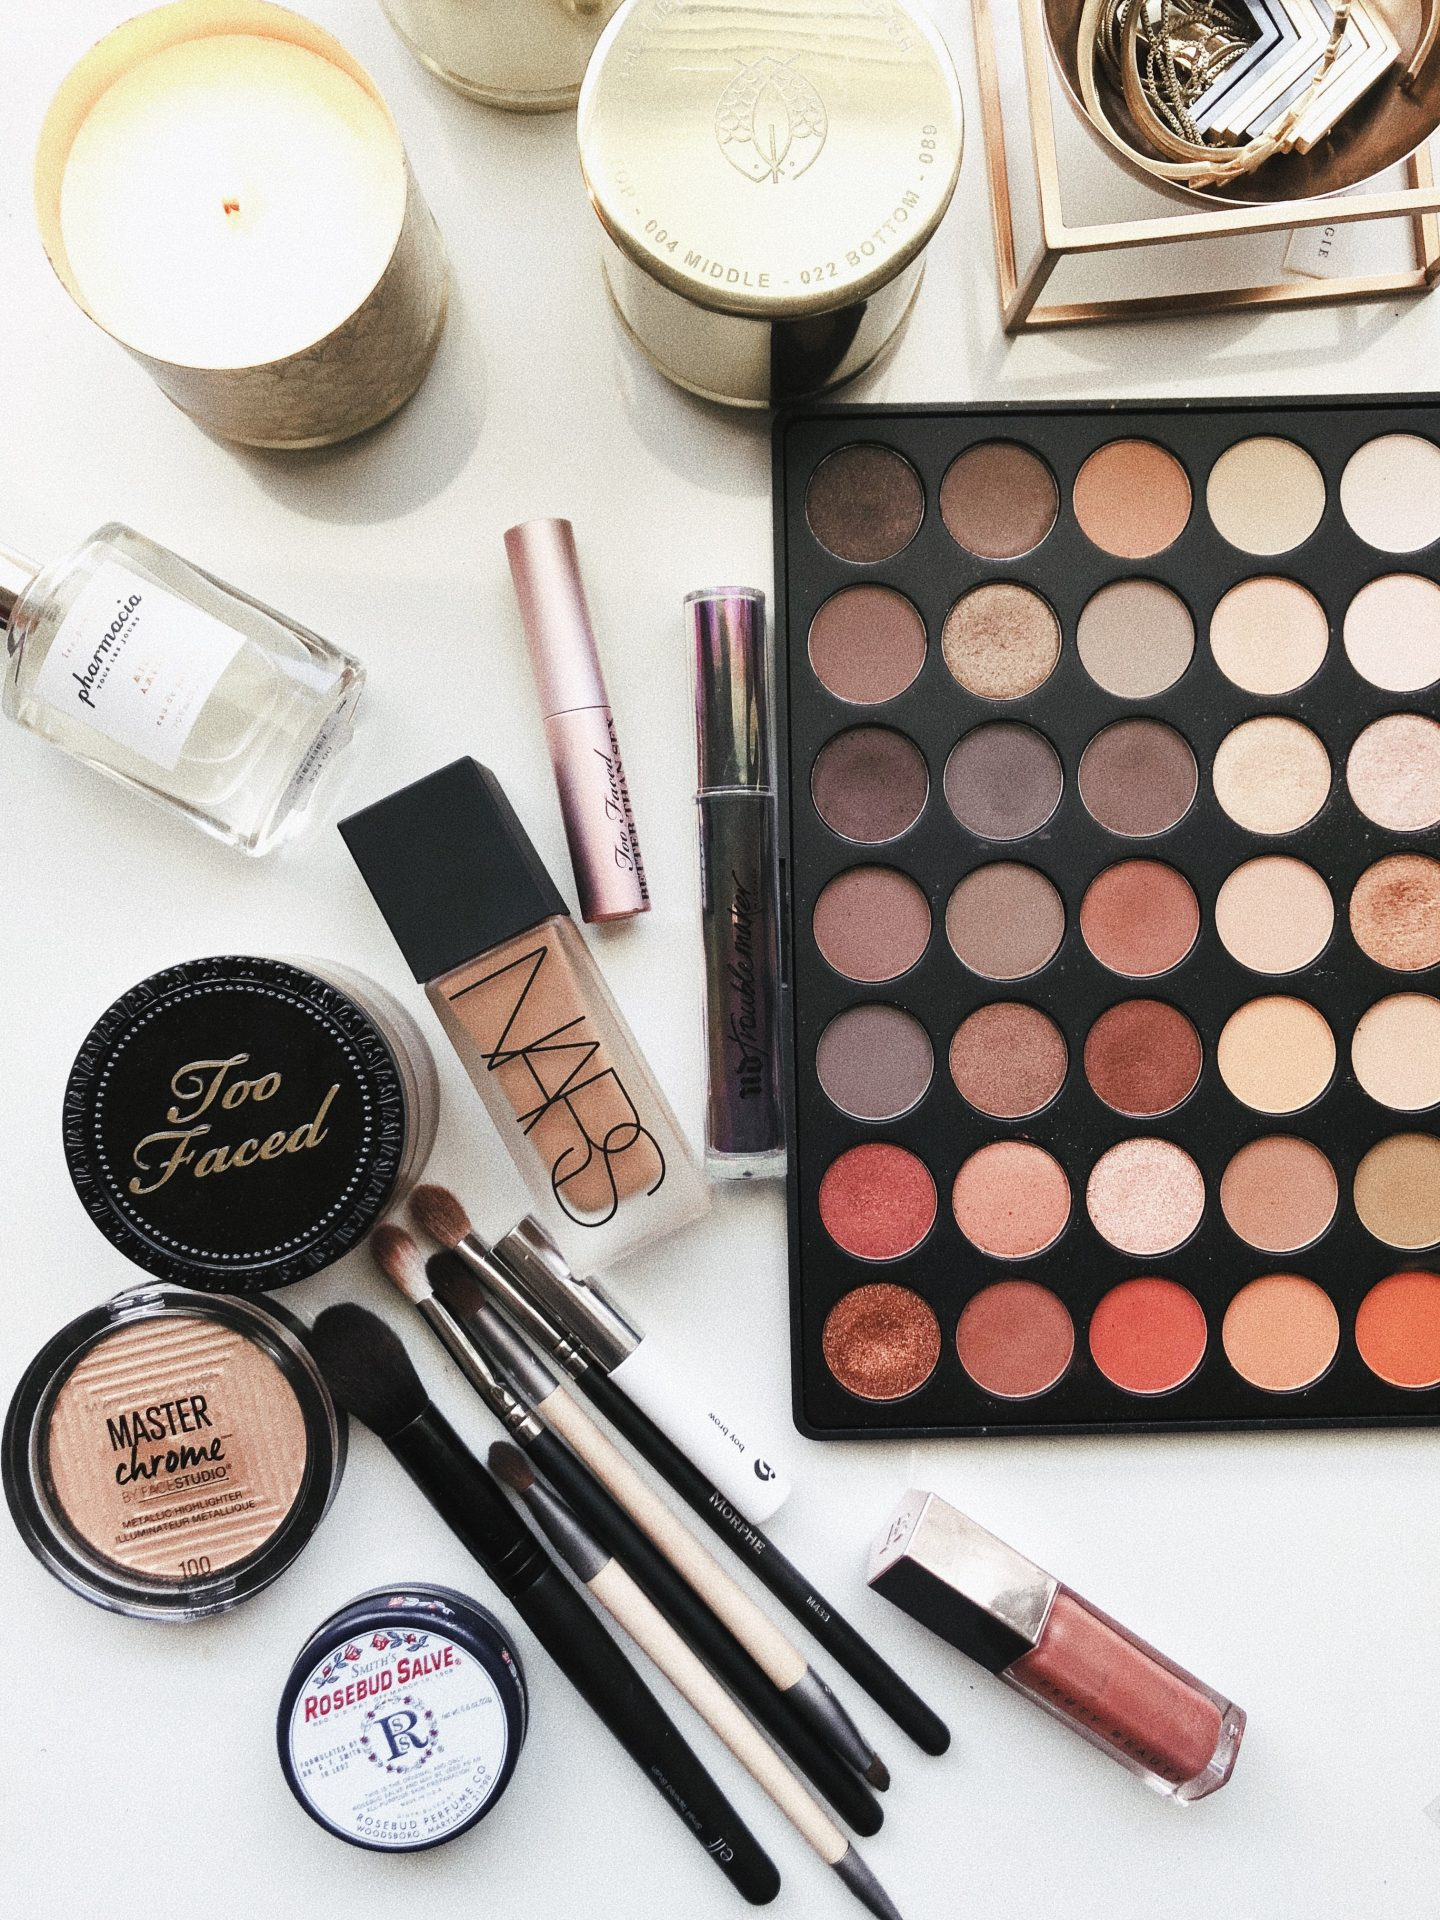 5 Beauty Products I Really Want To Try In 2021